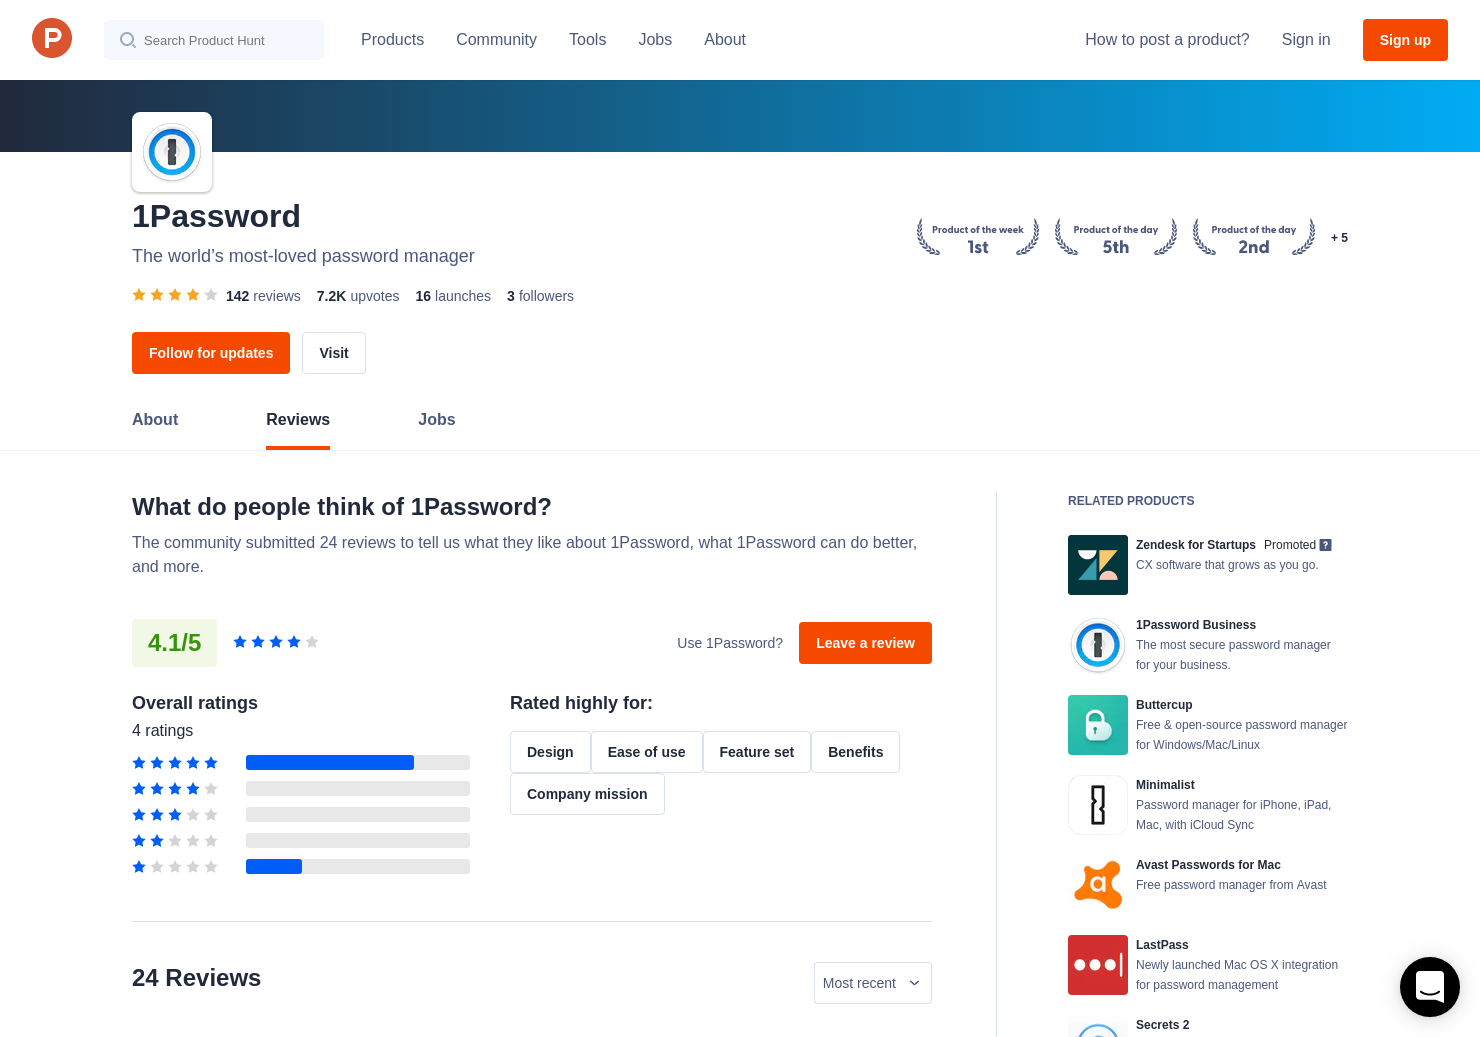 3 1Password 6 2 for iOS Reviews - Pros, Cons and Rating   Product Hunt